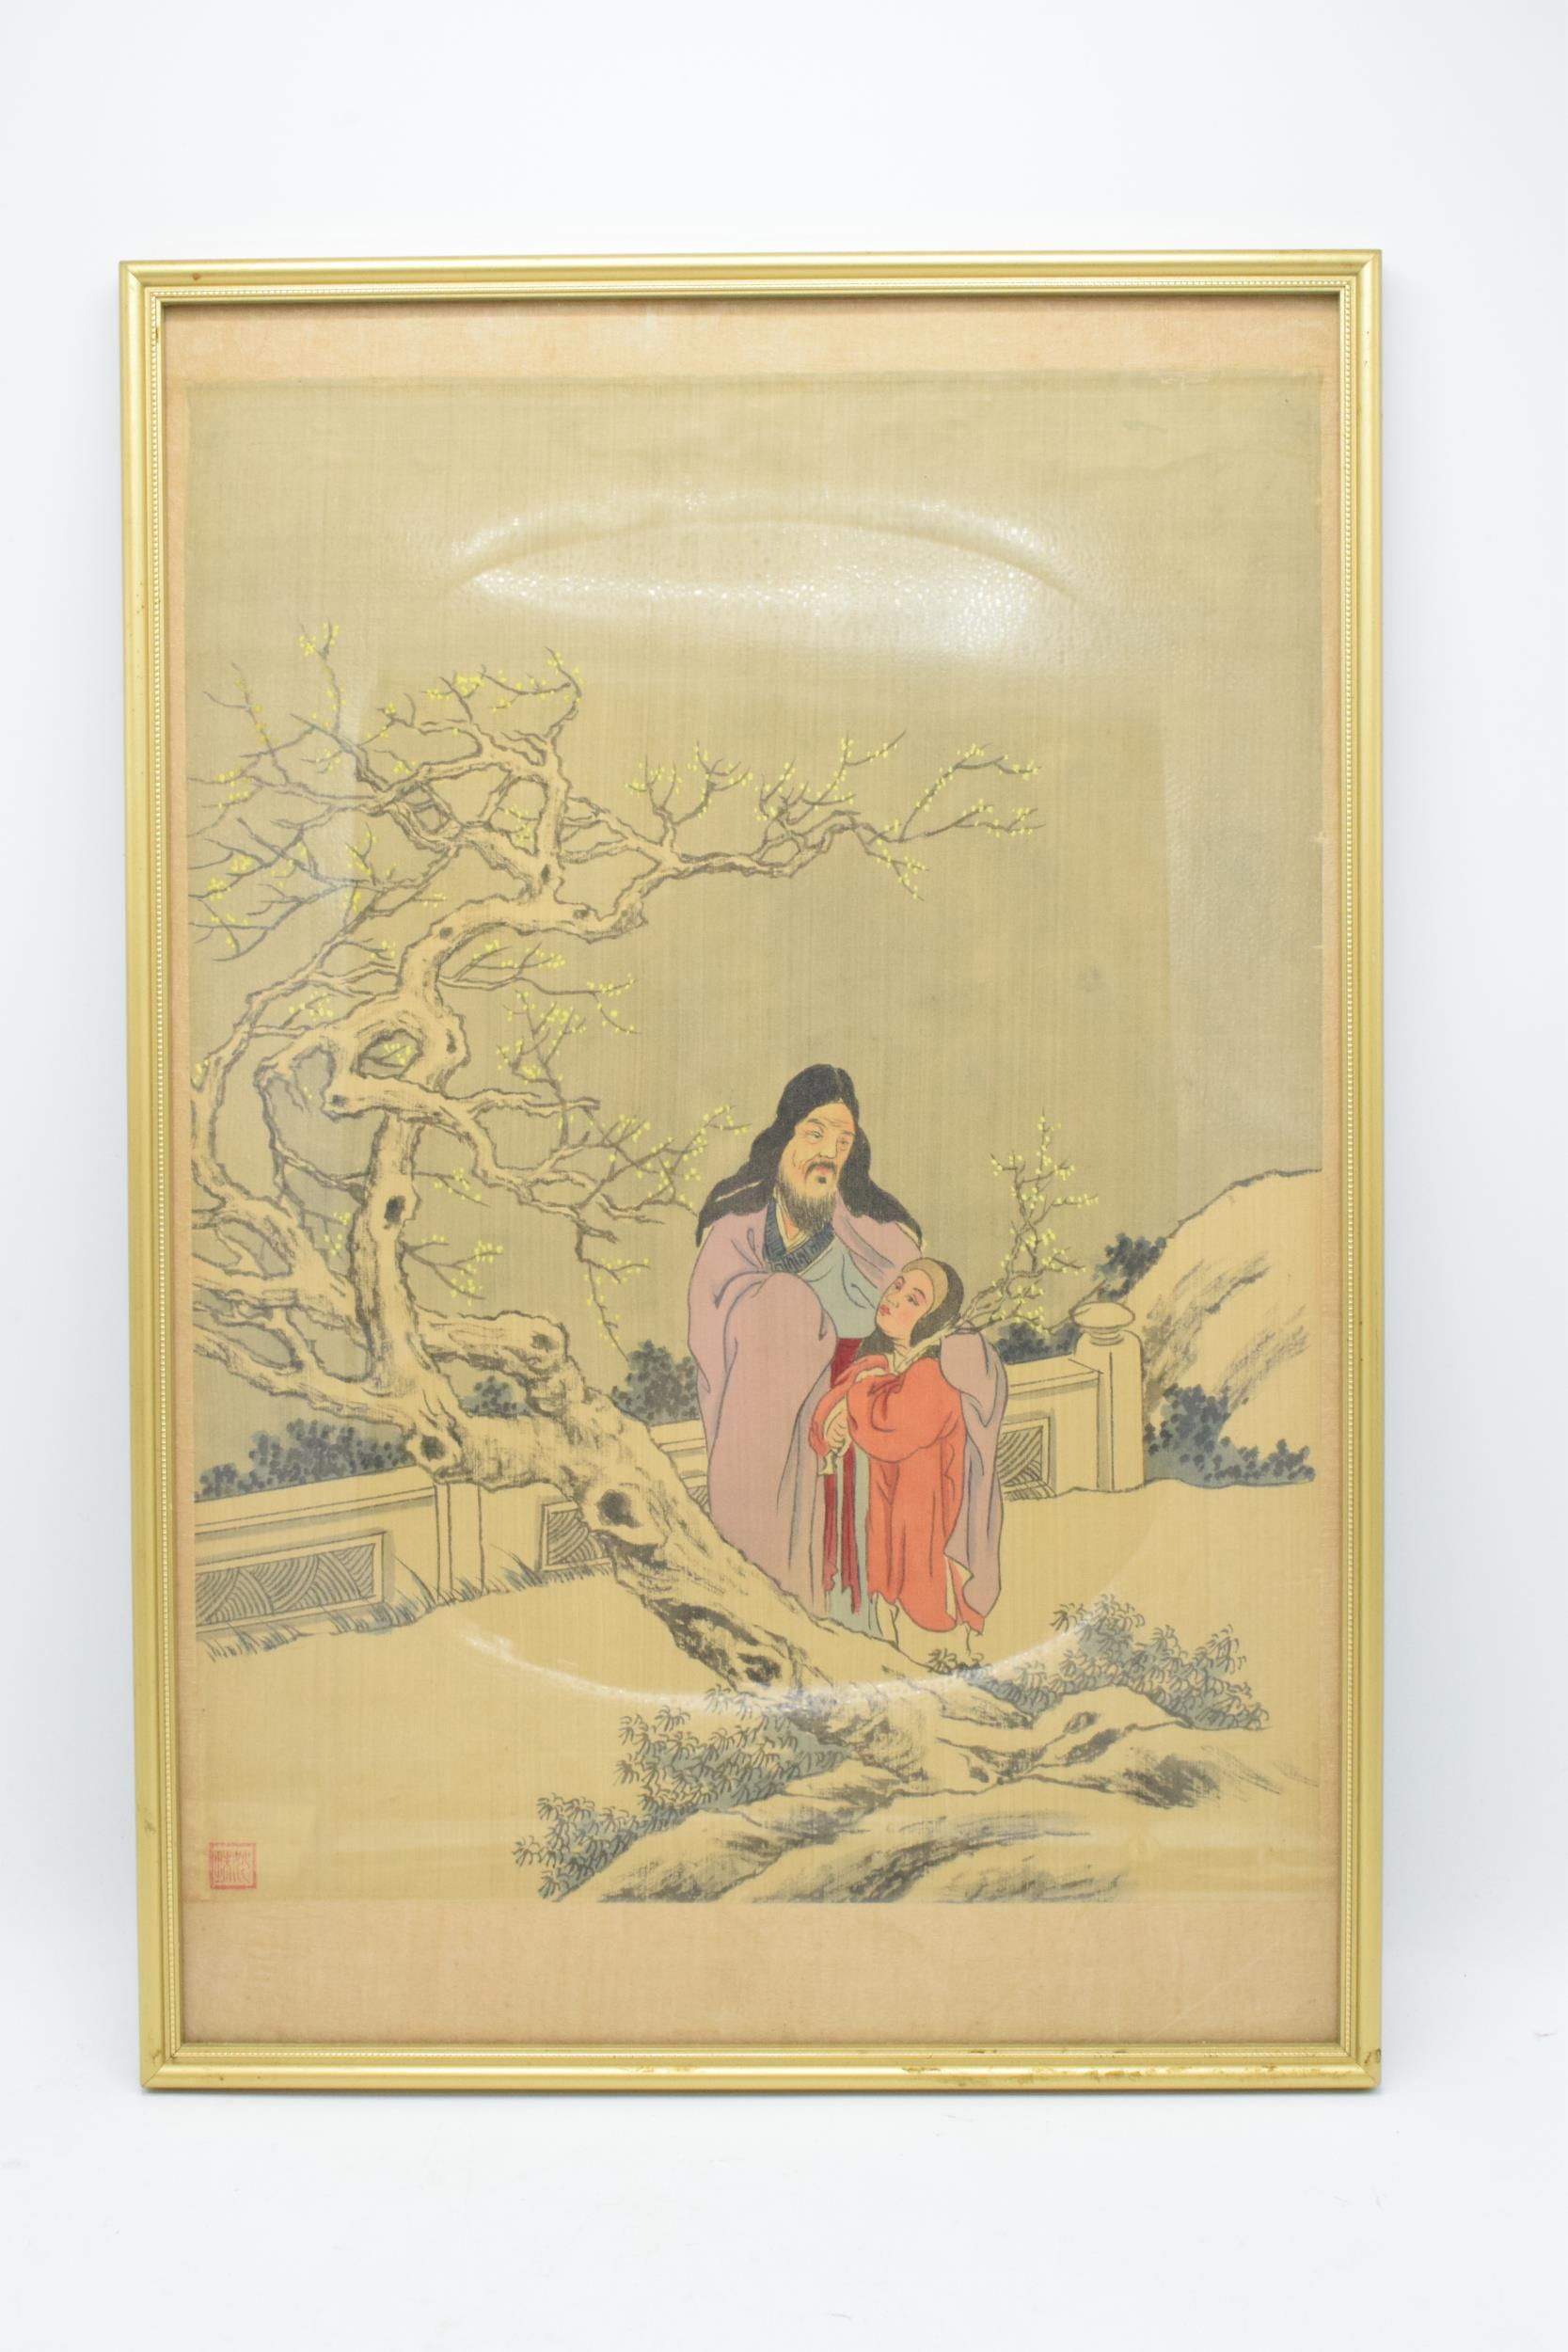 Meiji Japanese woodblock print depicting snowy mountain scene with man and young girl in front of